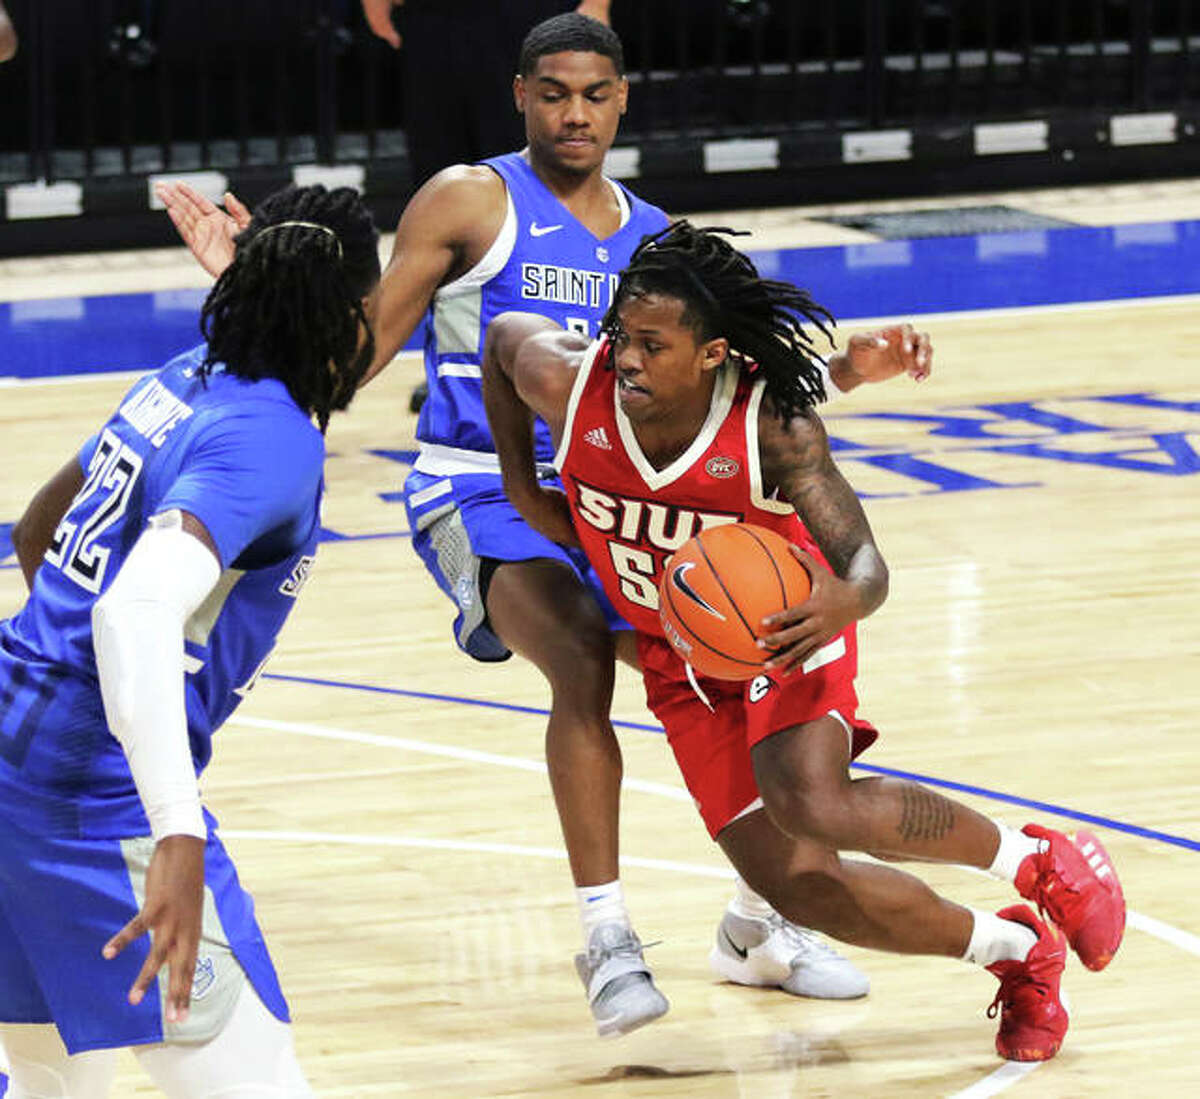 SIUE's Iziah James splits two SLU defenders off the drive during a Nov. 25 game in St. Louis. James and the Cougars were back in action Wednesday night at Northern Illinois in DeKalb.